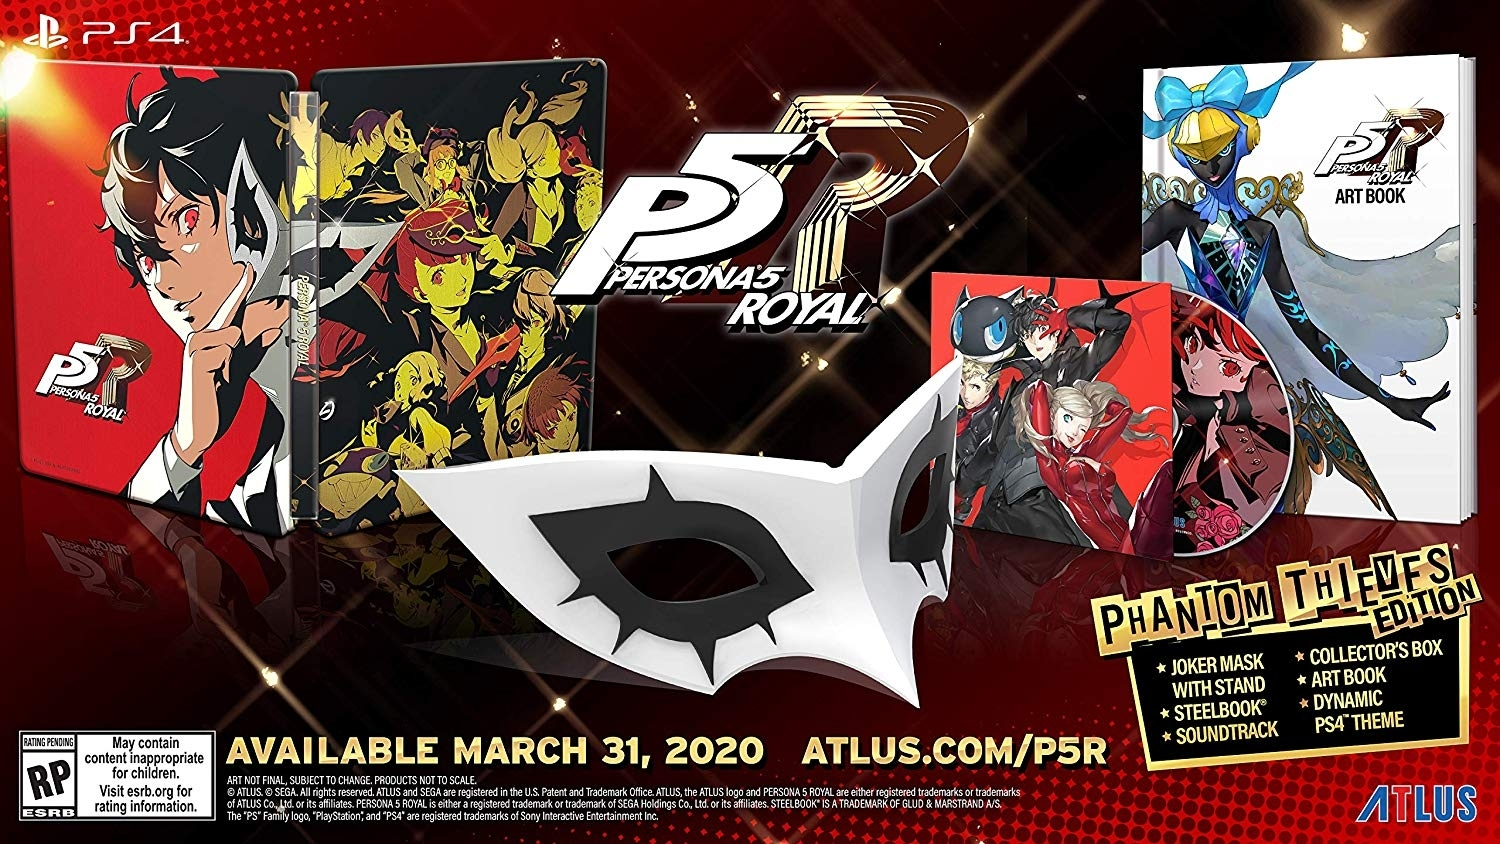 Persona 5 Royal Release Date Confirmed For March 31, 2020 In